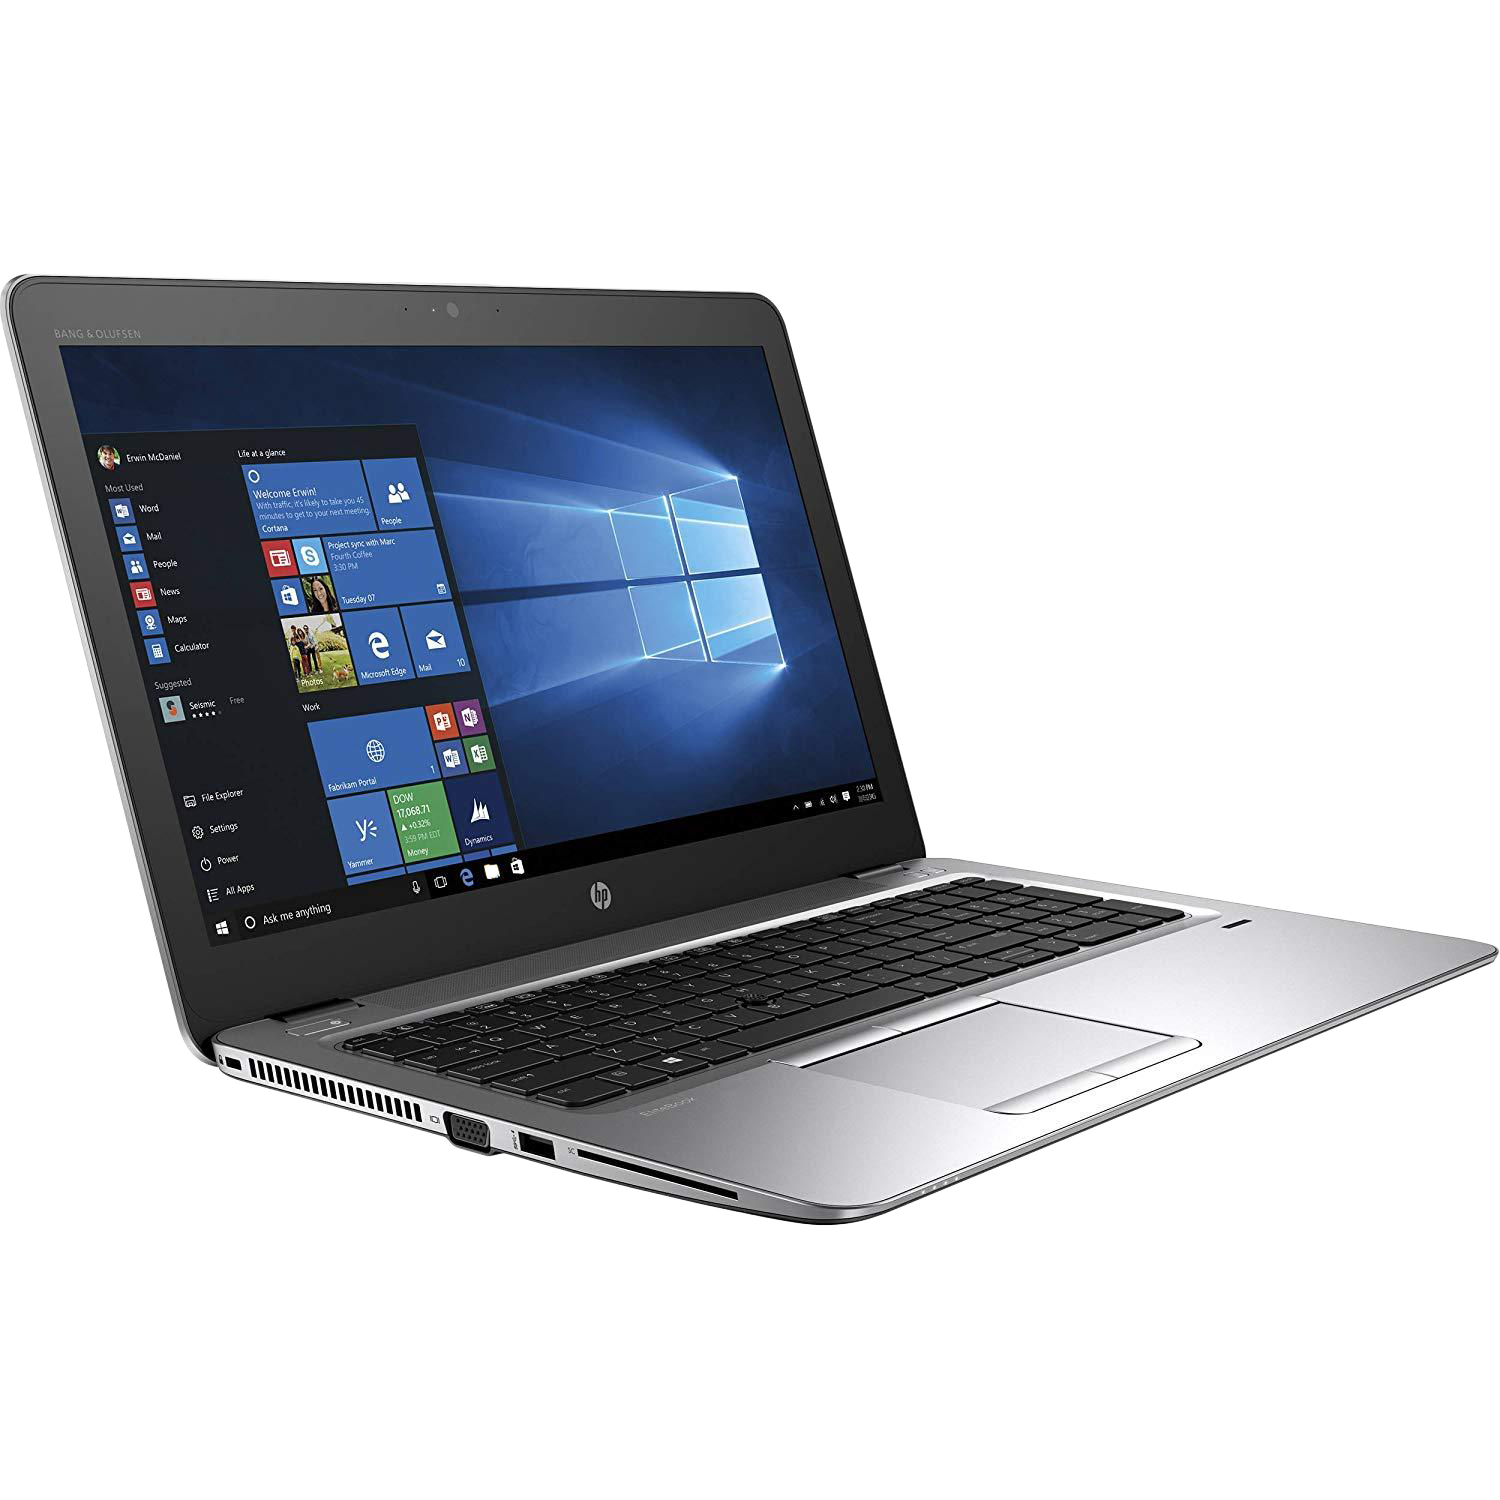 HP EliteBook 820 G2 Ultrabook Laptop i5-5300U 2.30GHz 4GB RAM 250GB HDD (Customisable)